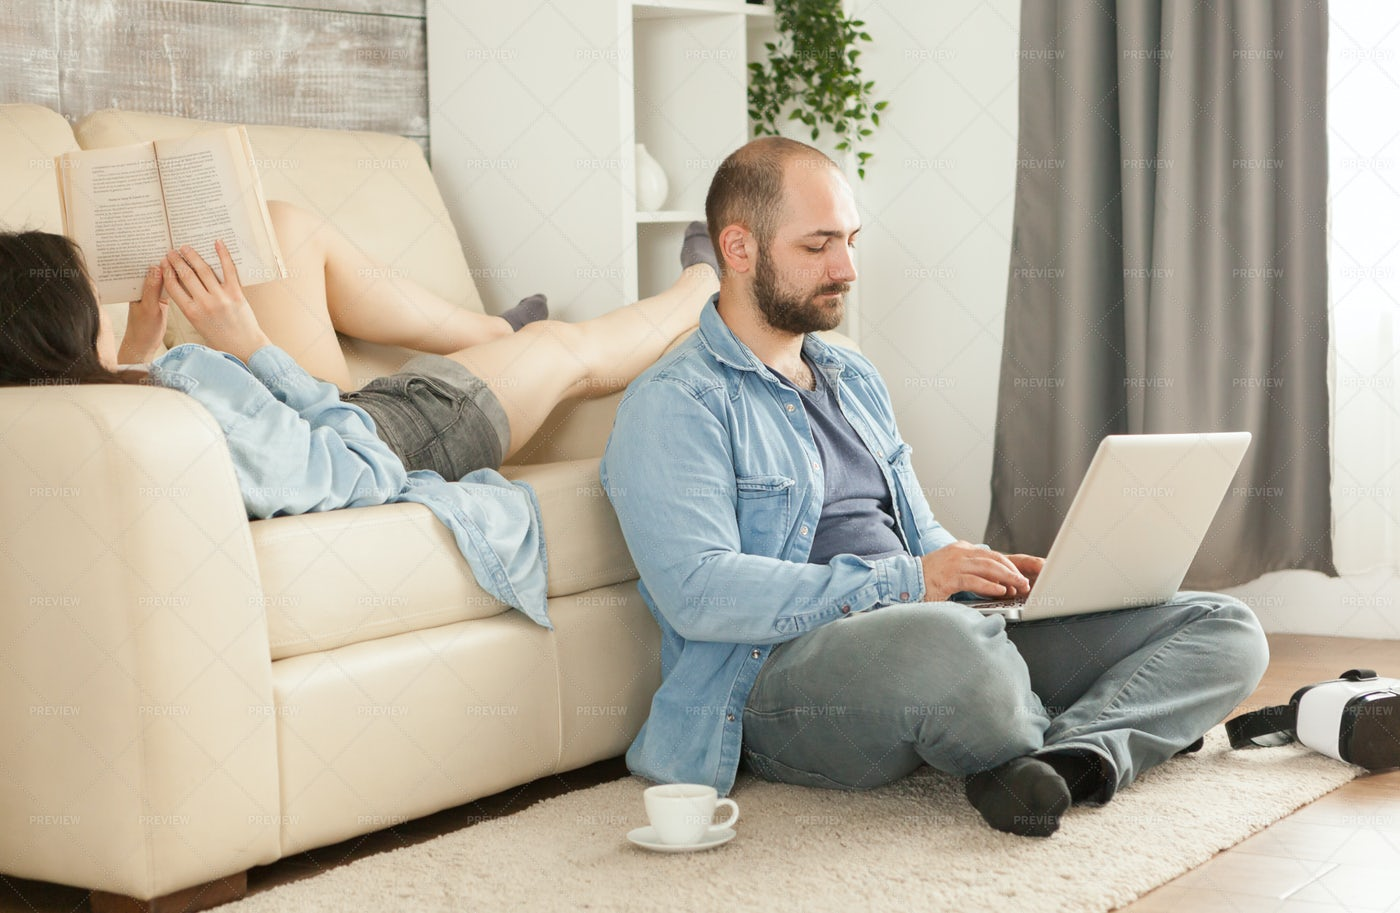 Relaxing At Home: Stock Photos